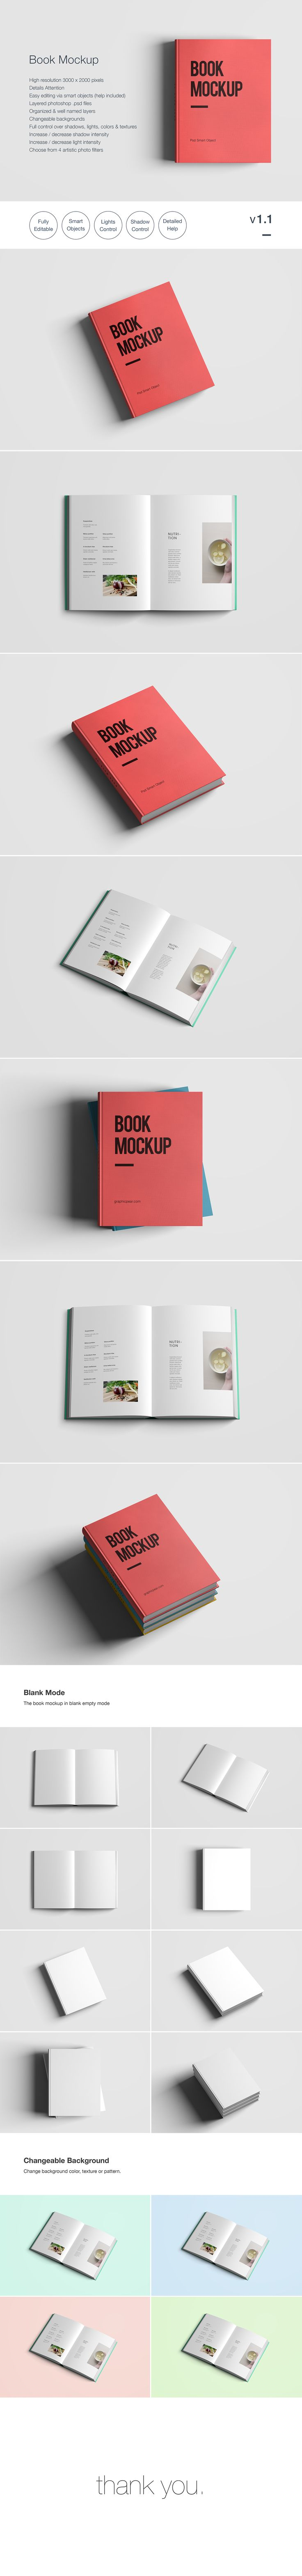 A Free Psd Book Mockup Template For Realistic Printed Book Presentation  Photoshop Format Easy To